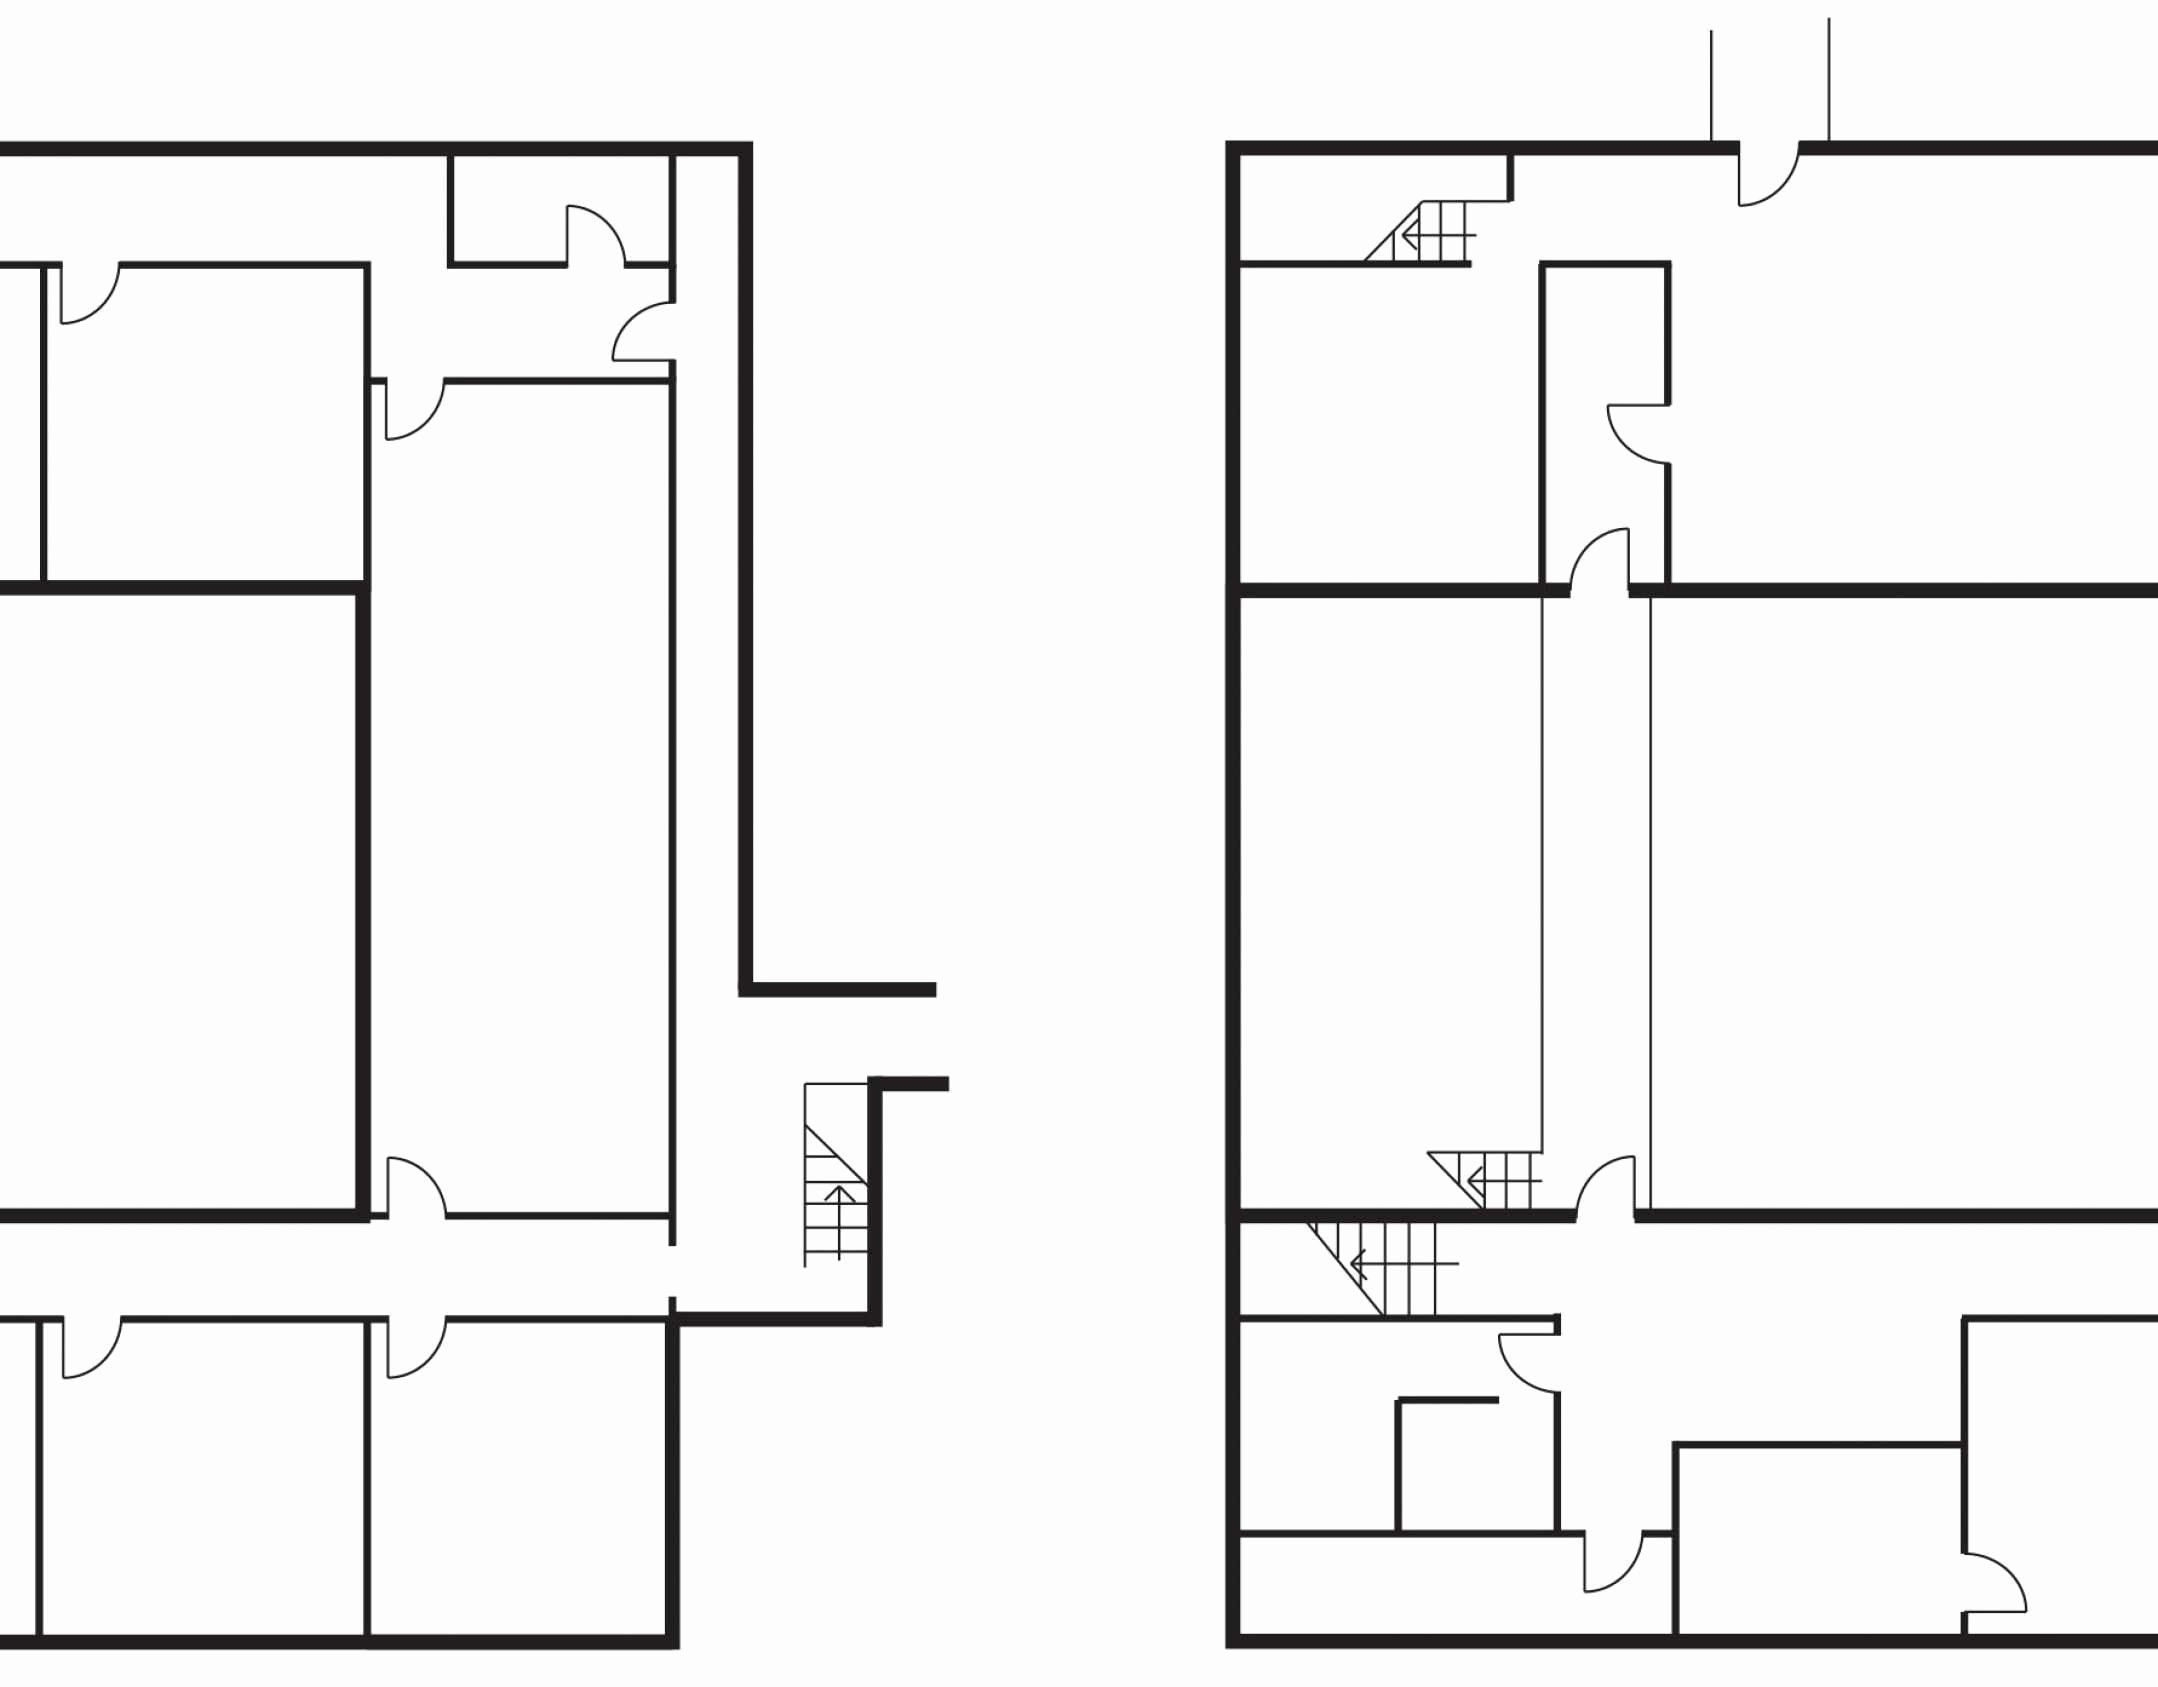 Blank Floor Plan Template In 2020 With Images Cleaning